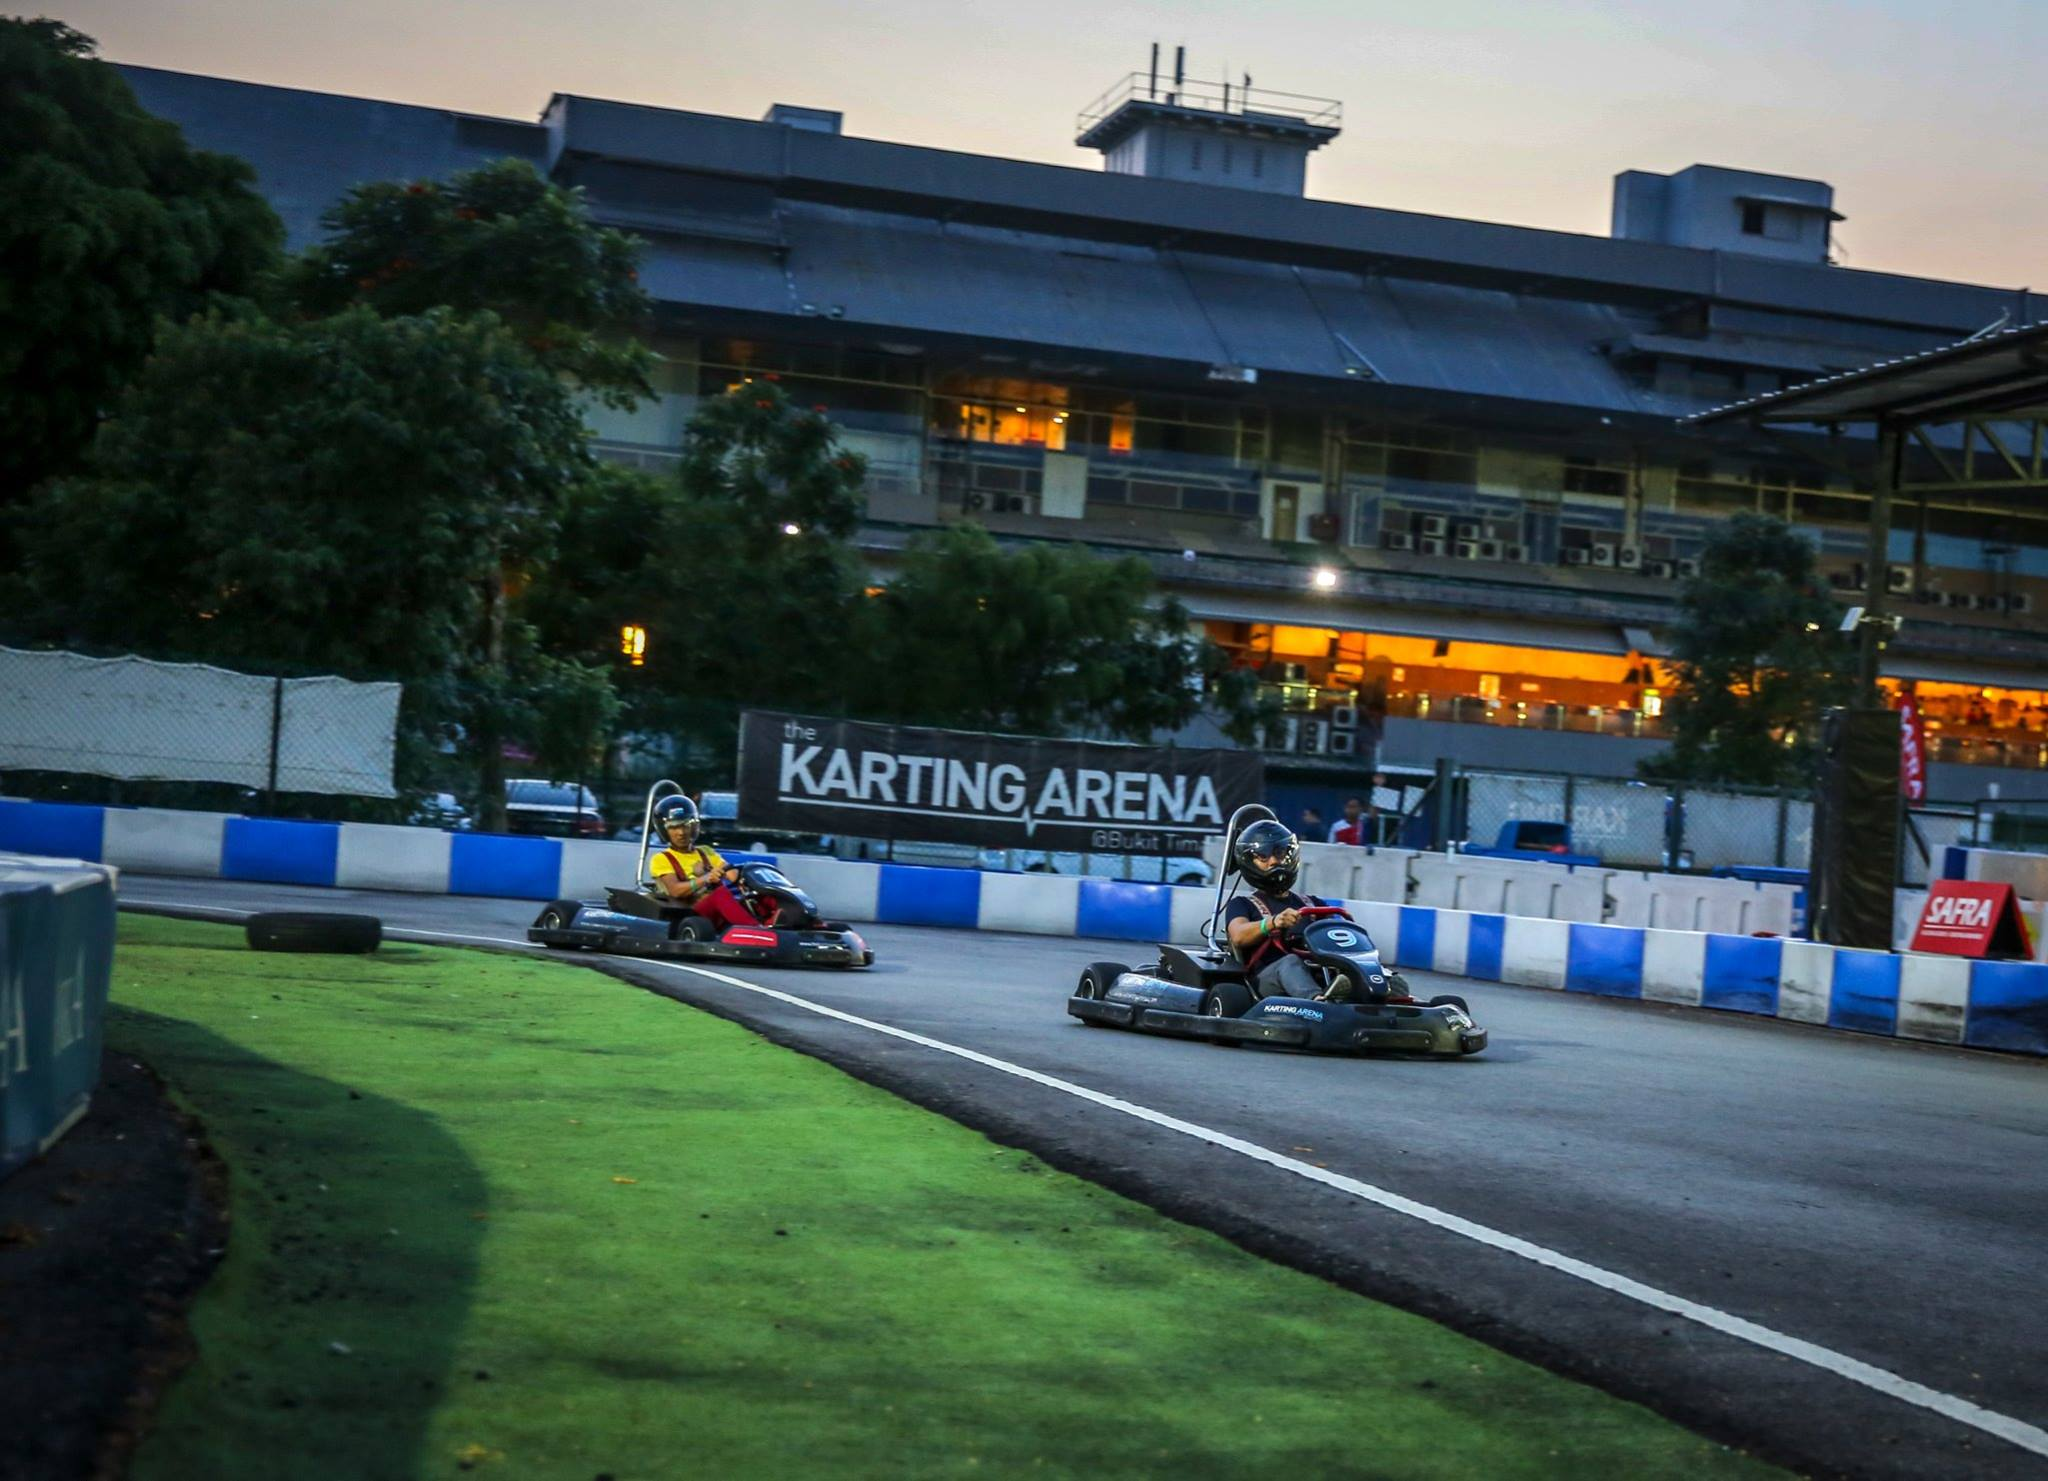 Fun Karting Session for 1 Adult (Weekend)